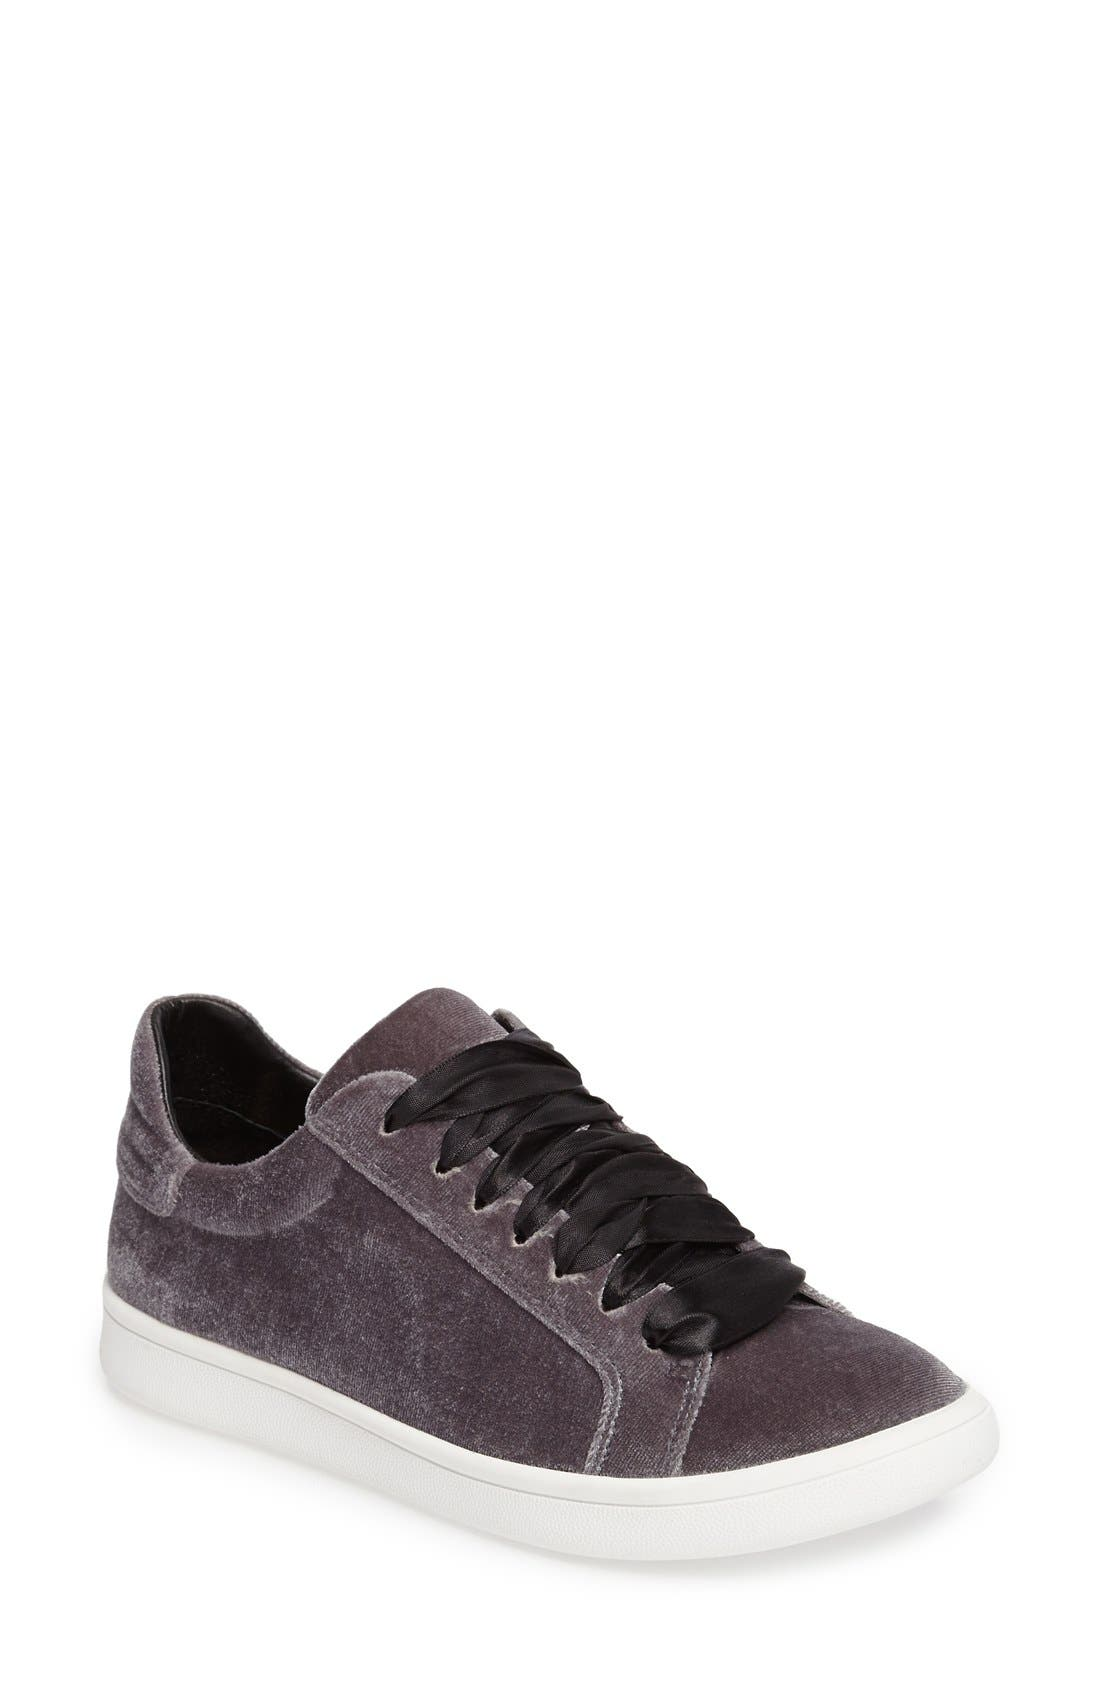 Alternate Image 1 Selected - Sam Edelman Marlow Sneaker (Women)